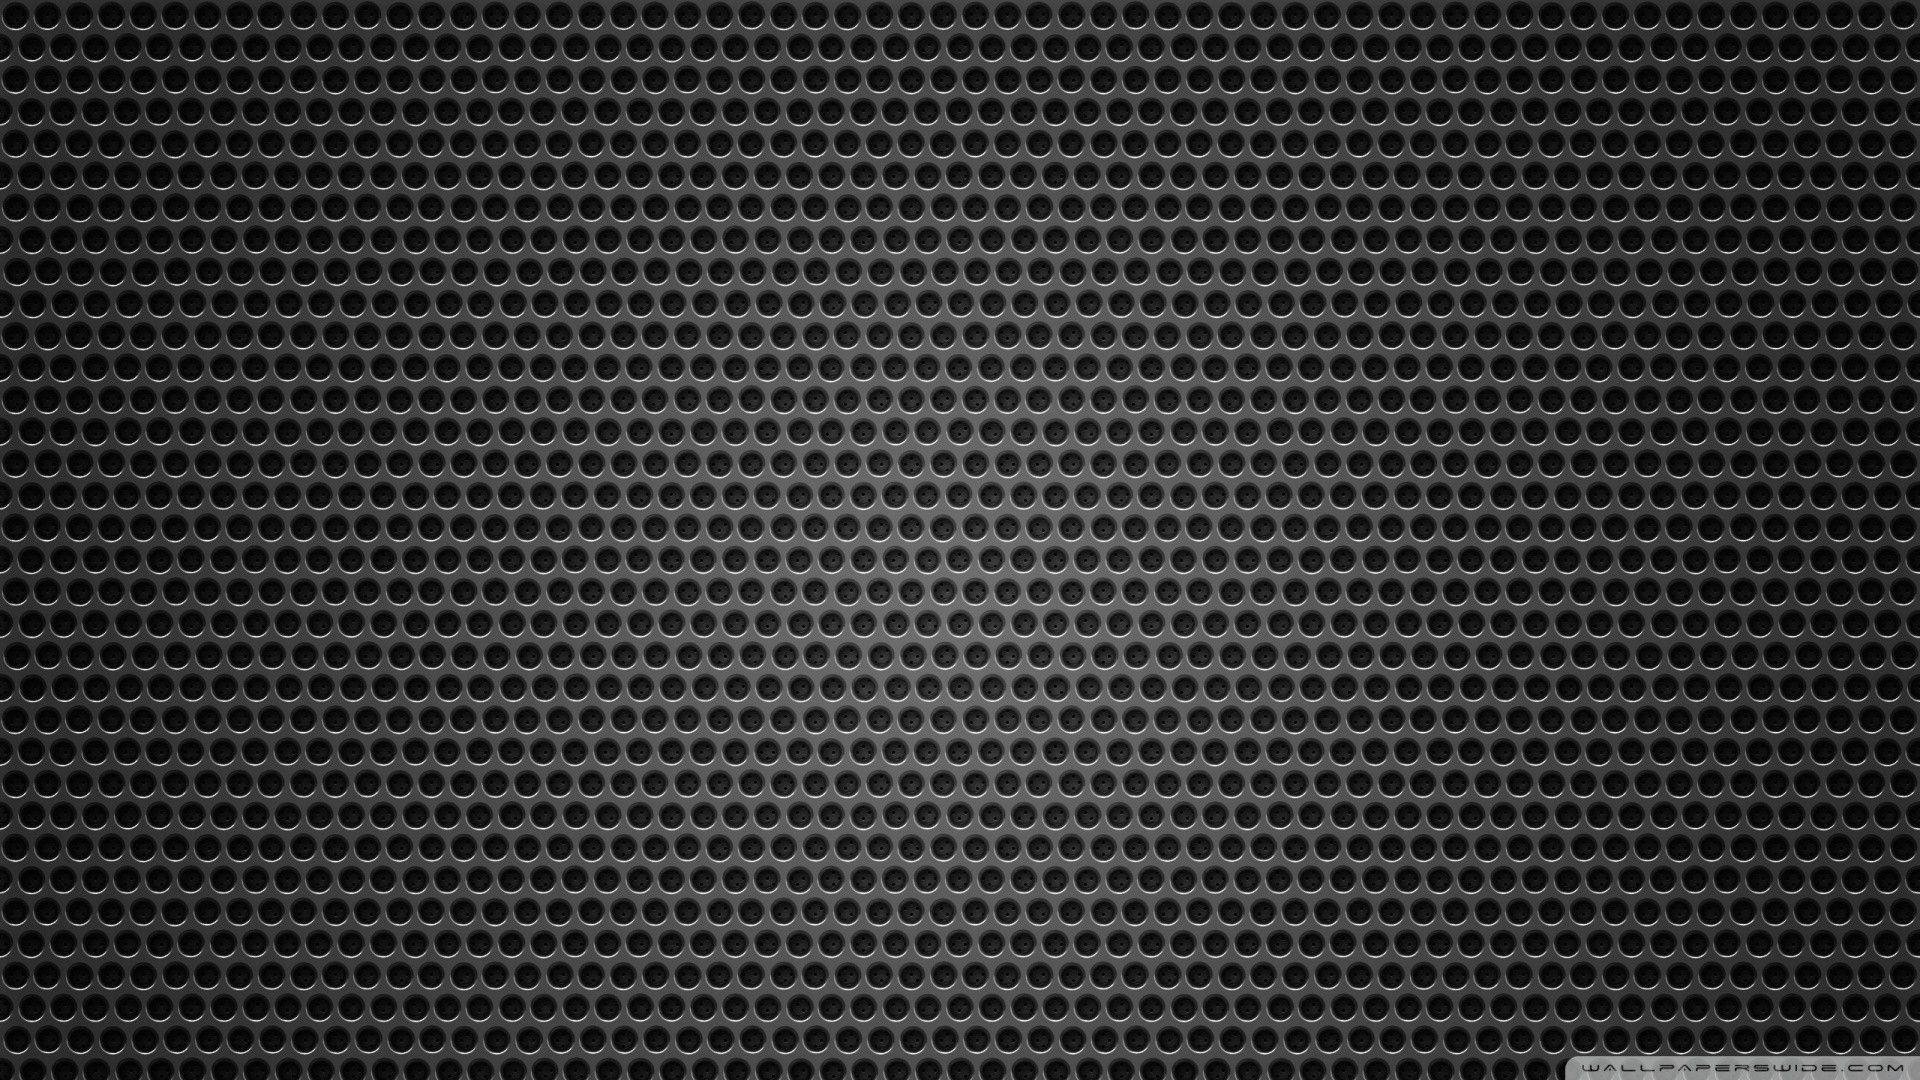 Brushed metal wallpaper android